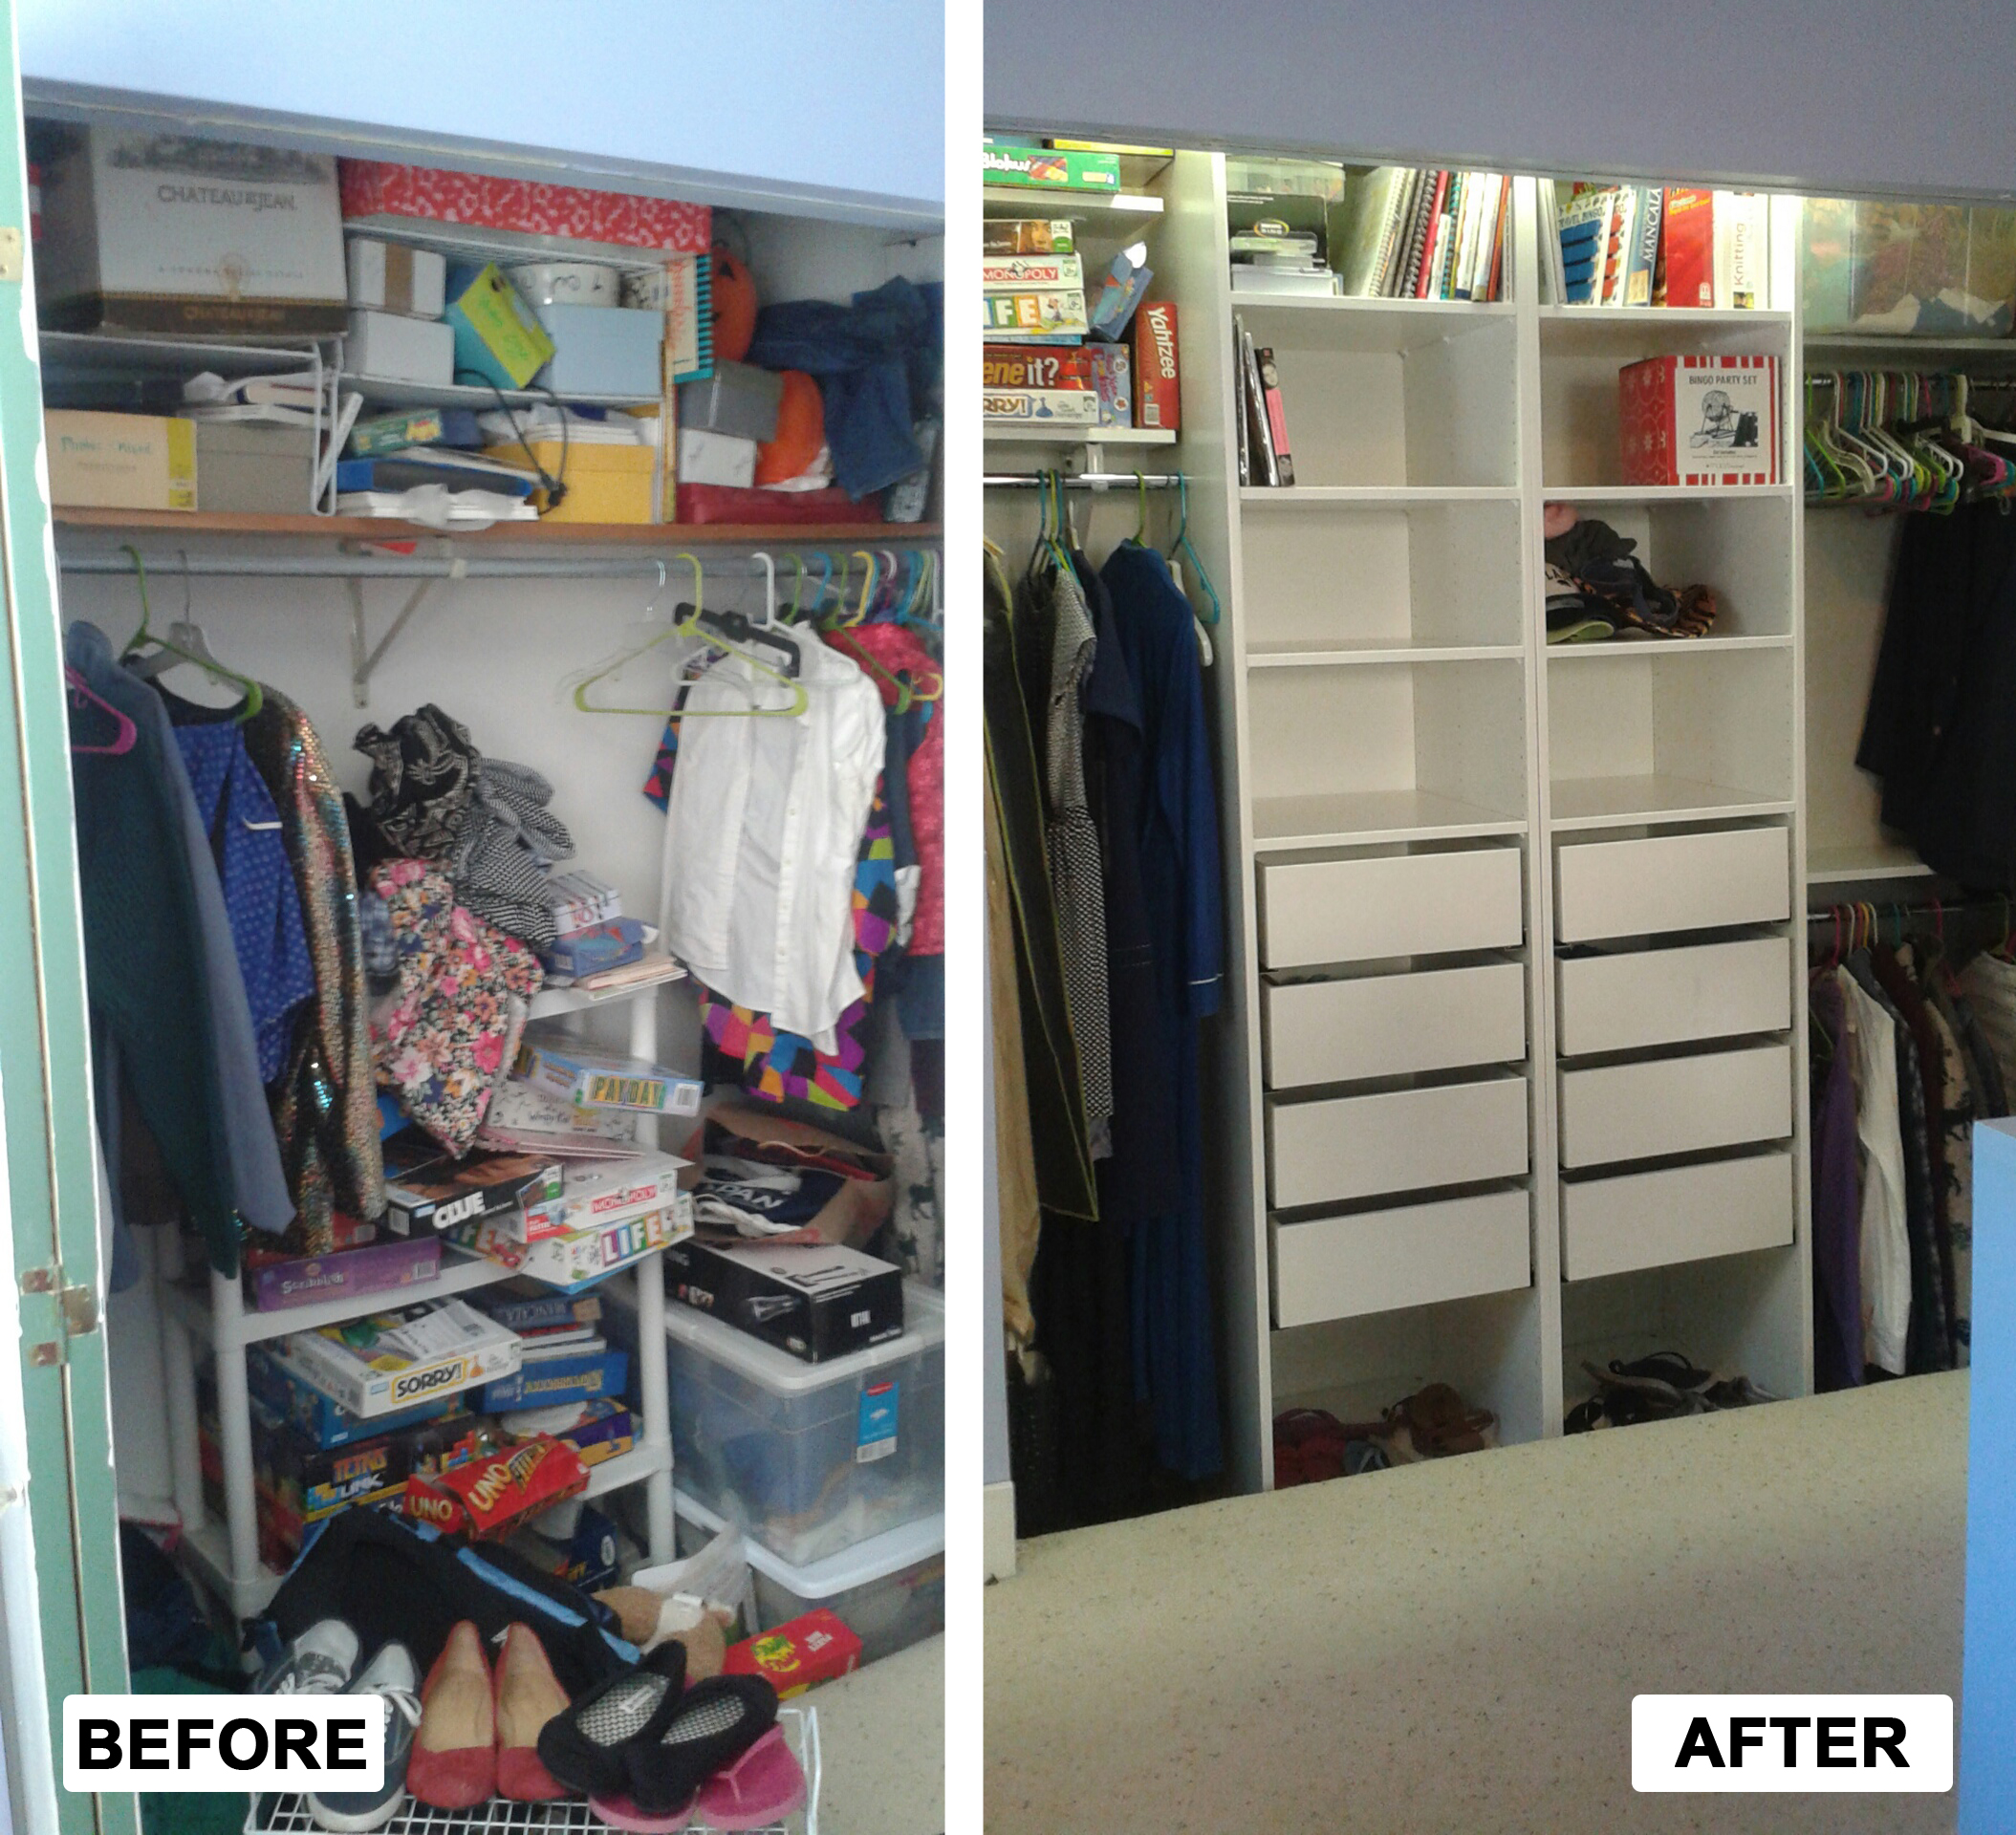 Before U0026 After: Designed, Installed And Organized Closet System For  Clothing And Home Items